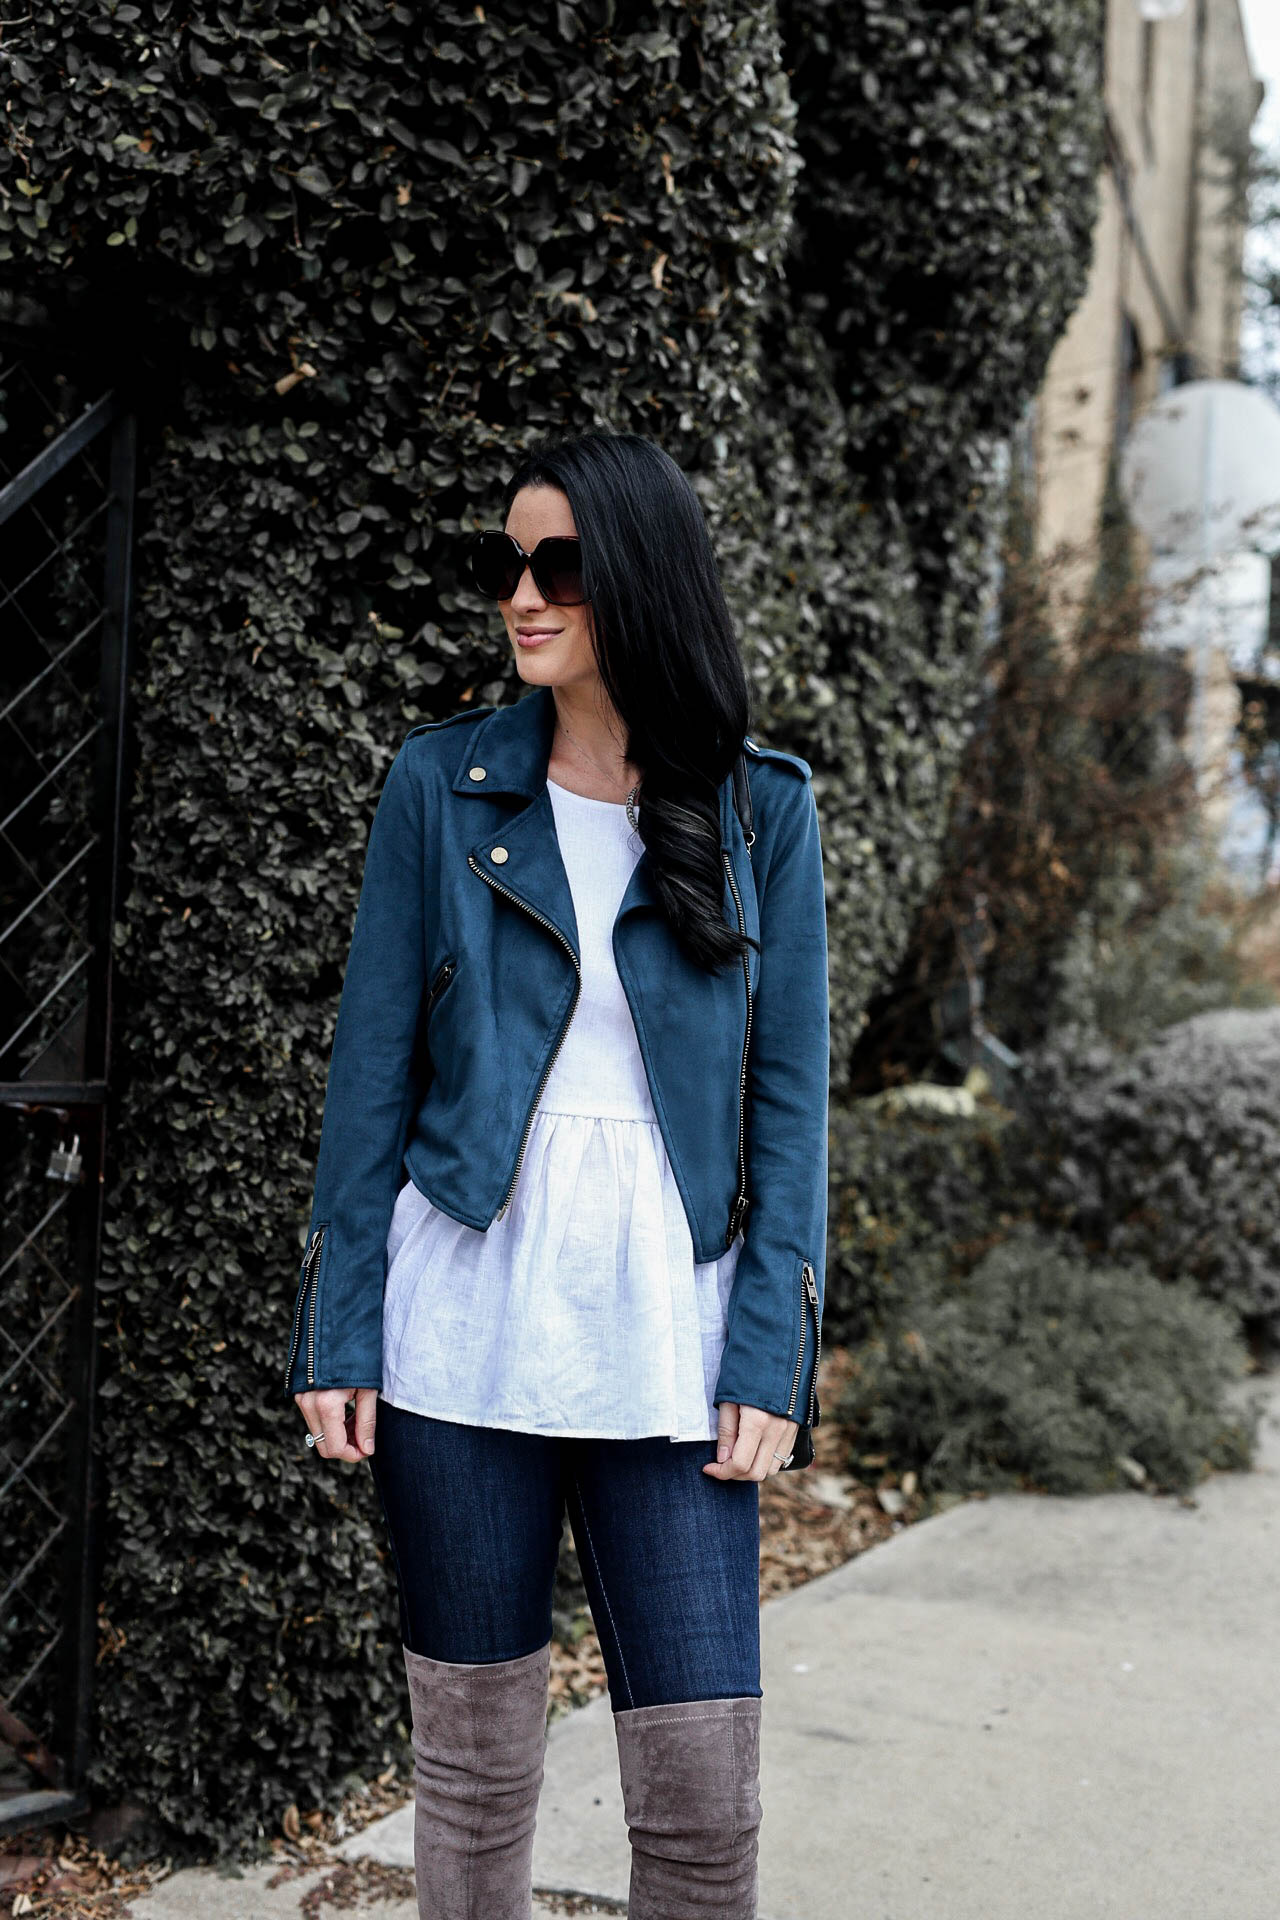 Teal Moto Jacket by popular Austin style blogger Dressed to Kill   Teal Moto Jacket   Must Have Transitional Moto Jackets   moto jacket outfit ideas   how to style a Moto jacket   Moto jackets for women    Dressed to Kill #motojacket #transitionalstyle #winteroutfits